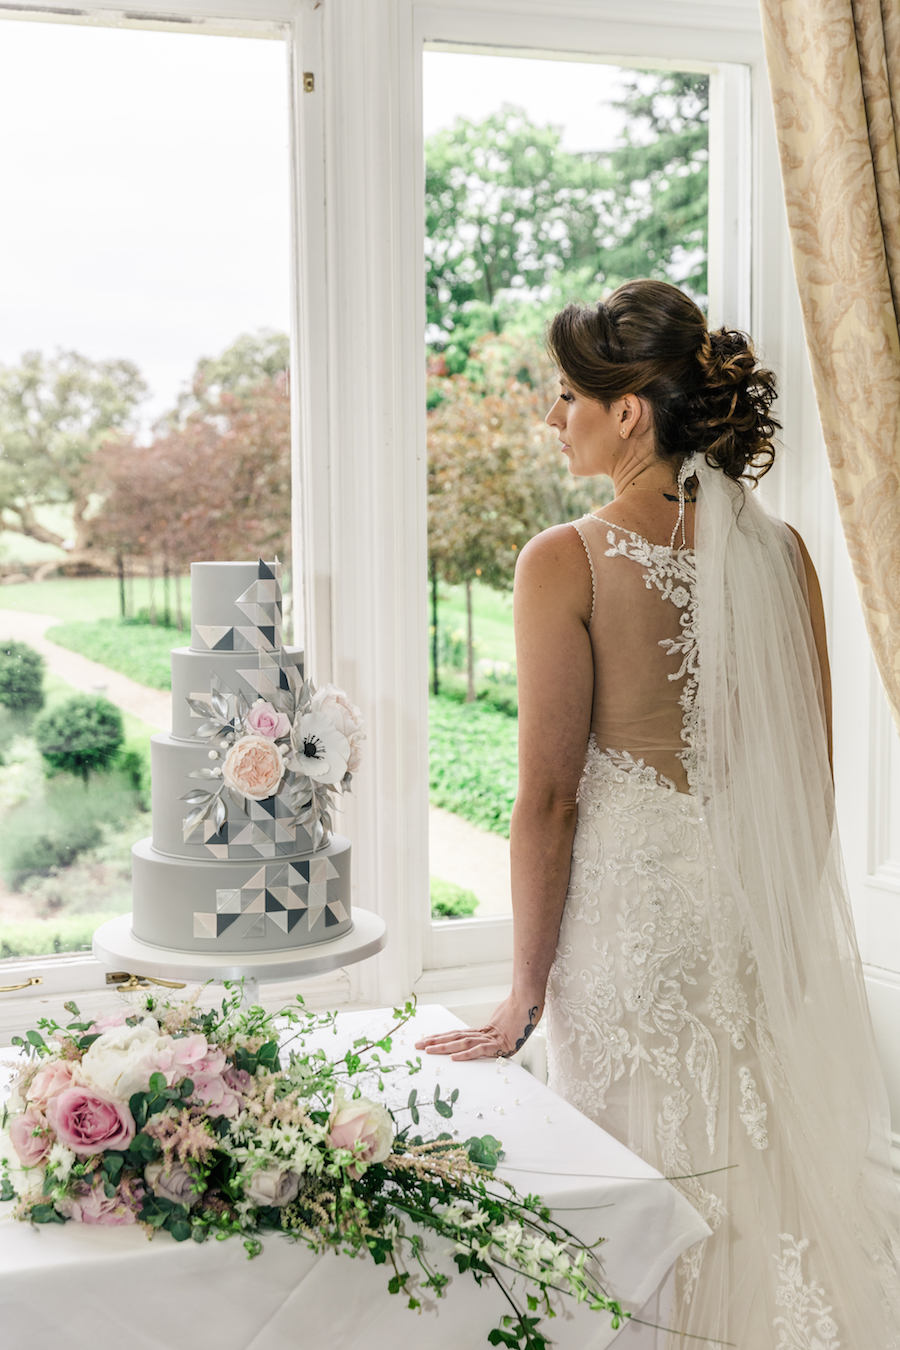 Wedding editorial from Wivenhoe House, image credit Ayshea Goldberg Photography (11)